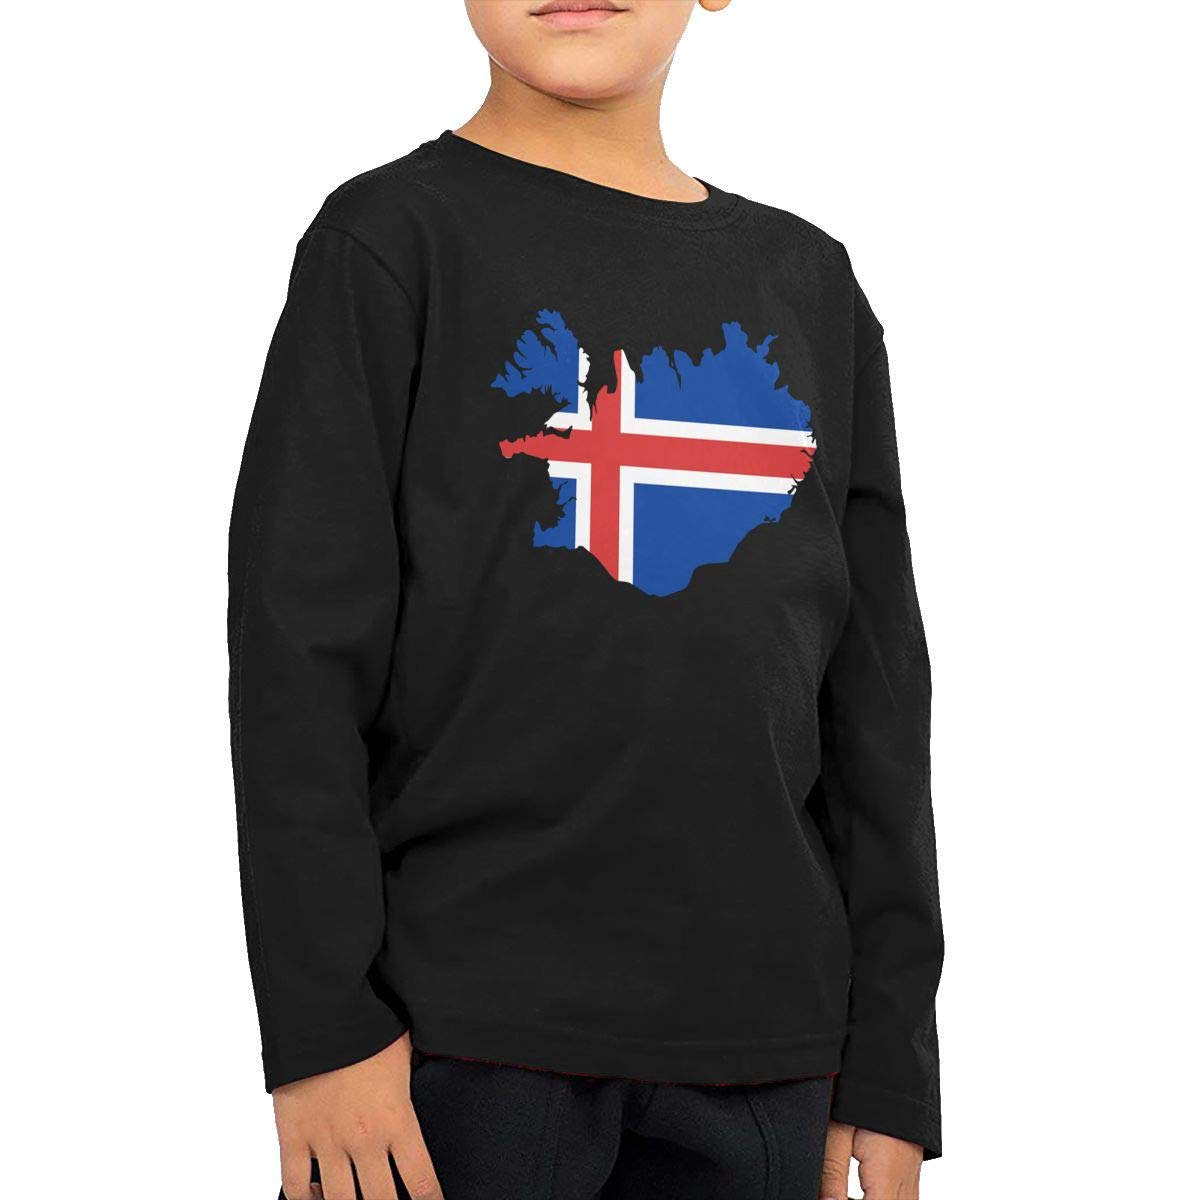 WZMD Flag of Iceland Map Childrens Long Sleeve T-Shirt for Boys Girls